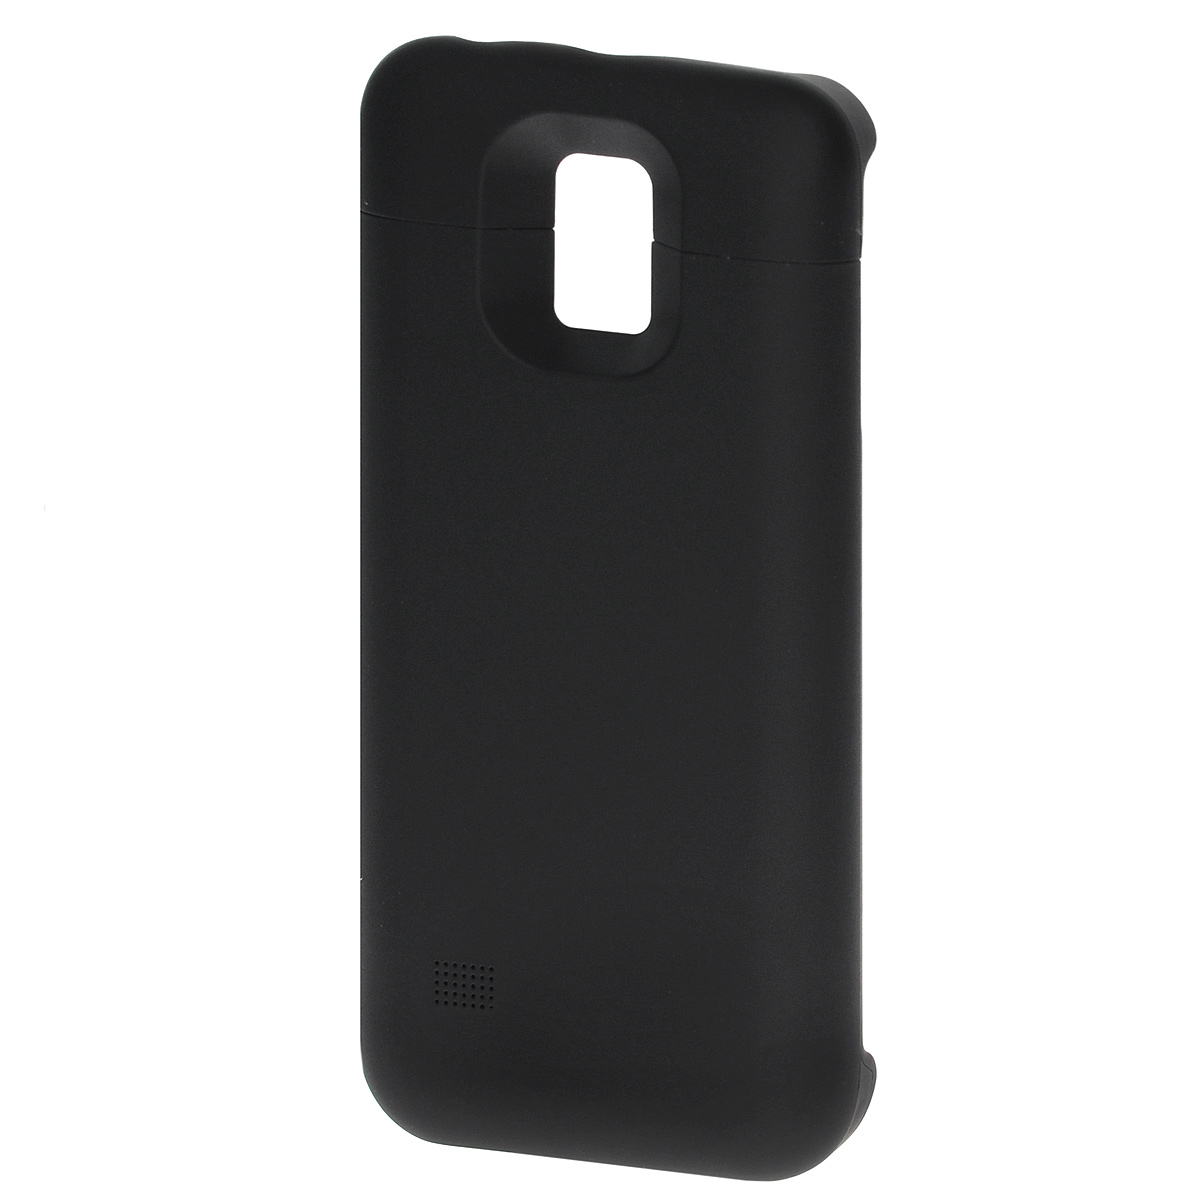 EXEQ HelpinG-SC09 чехол-аккумулятор для Samsung Galaxy S5 mini, Black (3300 мАч, клип-кейс) exeq helping sc09 чехол аккумулятор для samsung galaxy s5 mini black 3300 мач клип кейс